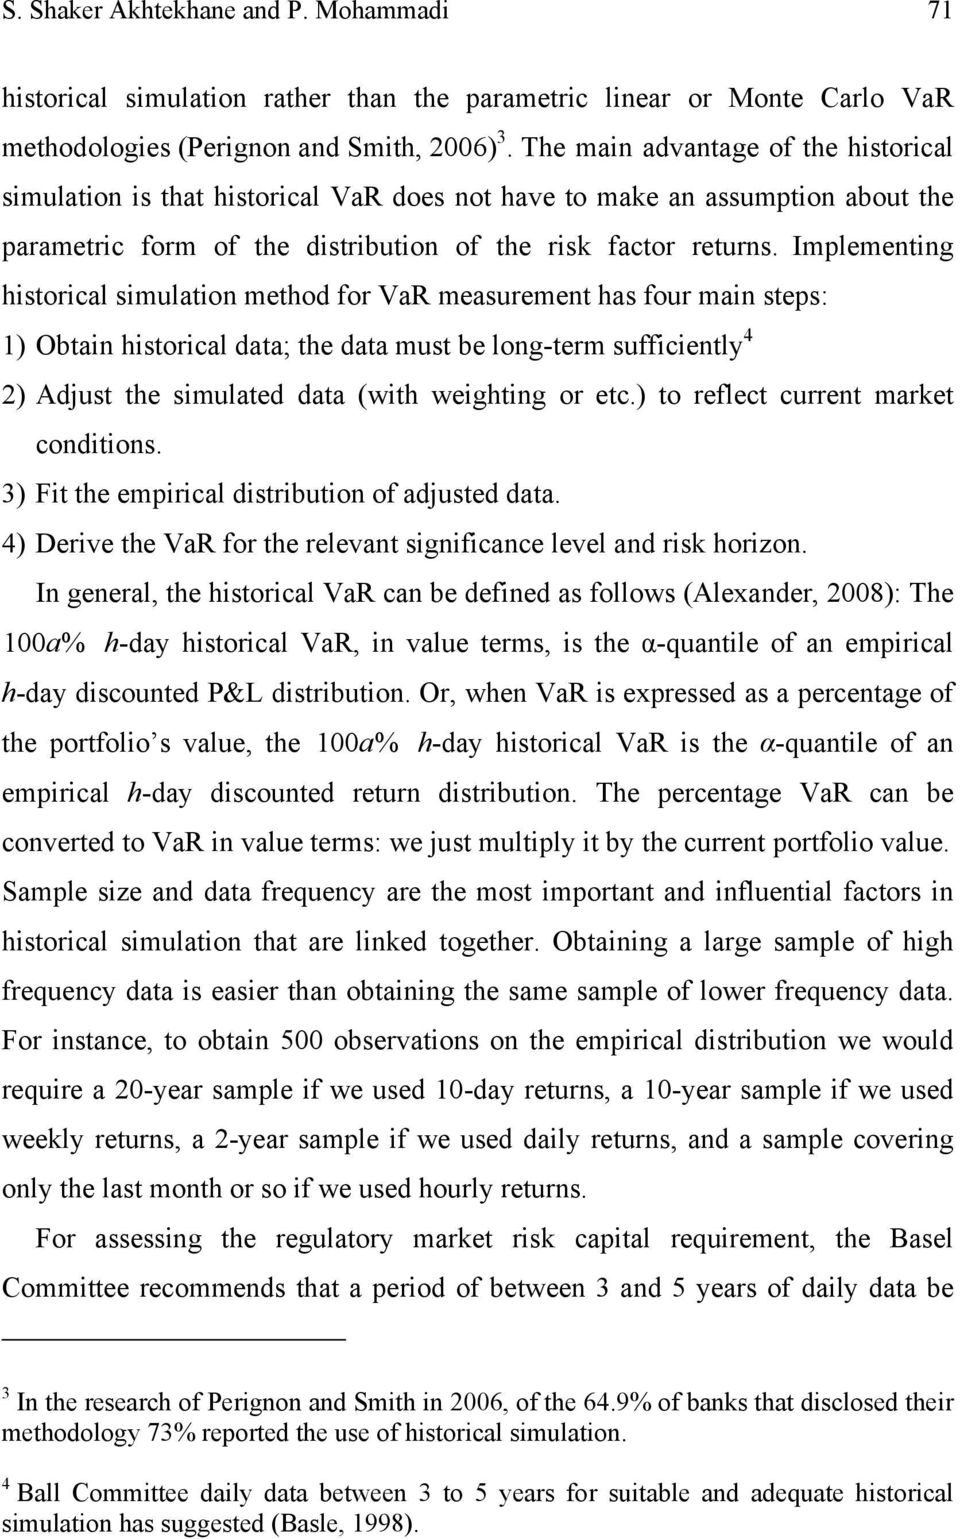 Implementing historical simulation method for VaR measurement has four main steps: 1) Obtain historical data; the data must be long-term sufficiently 4 2) Adjust the simulated data (with weighting or